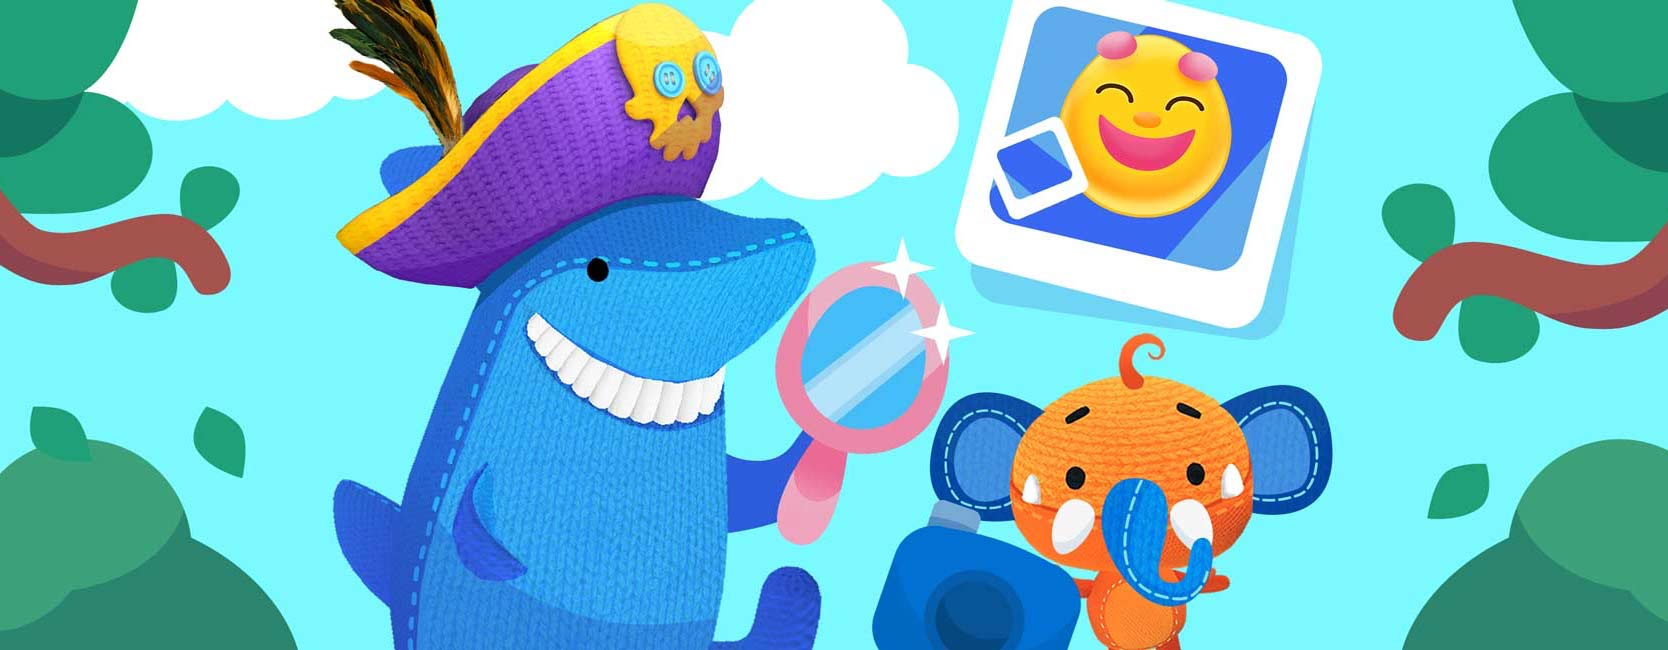 New Finnish application supports the emotional development of small children